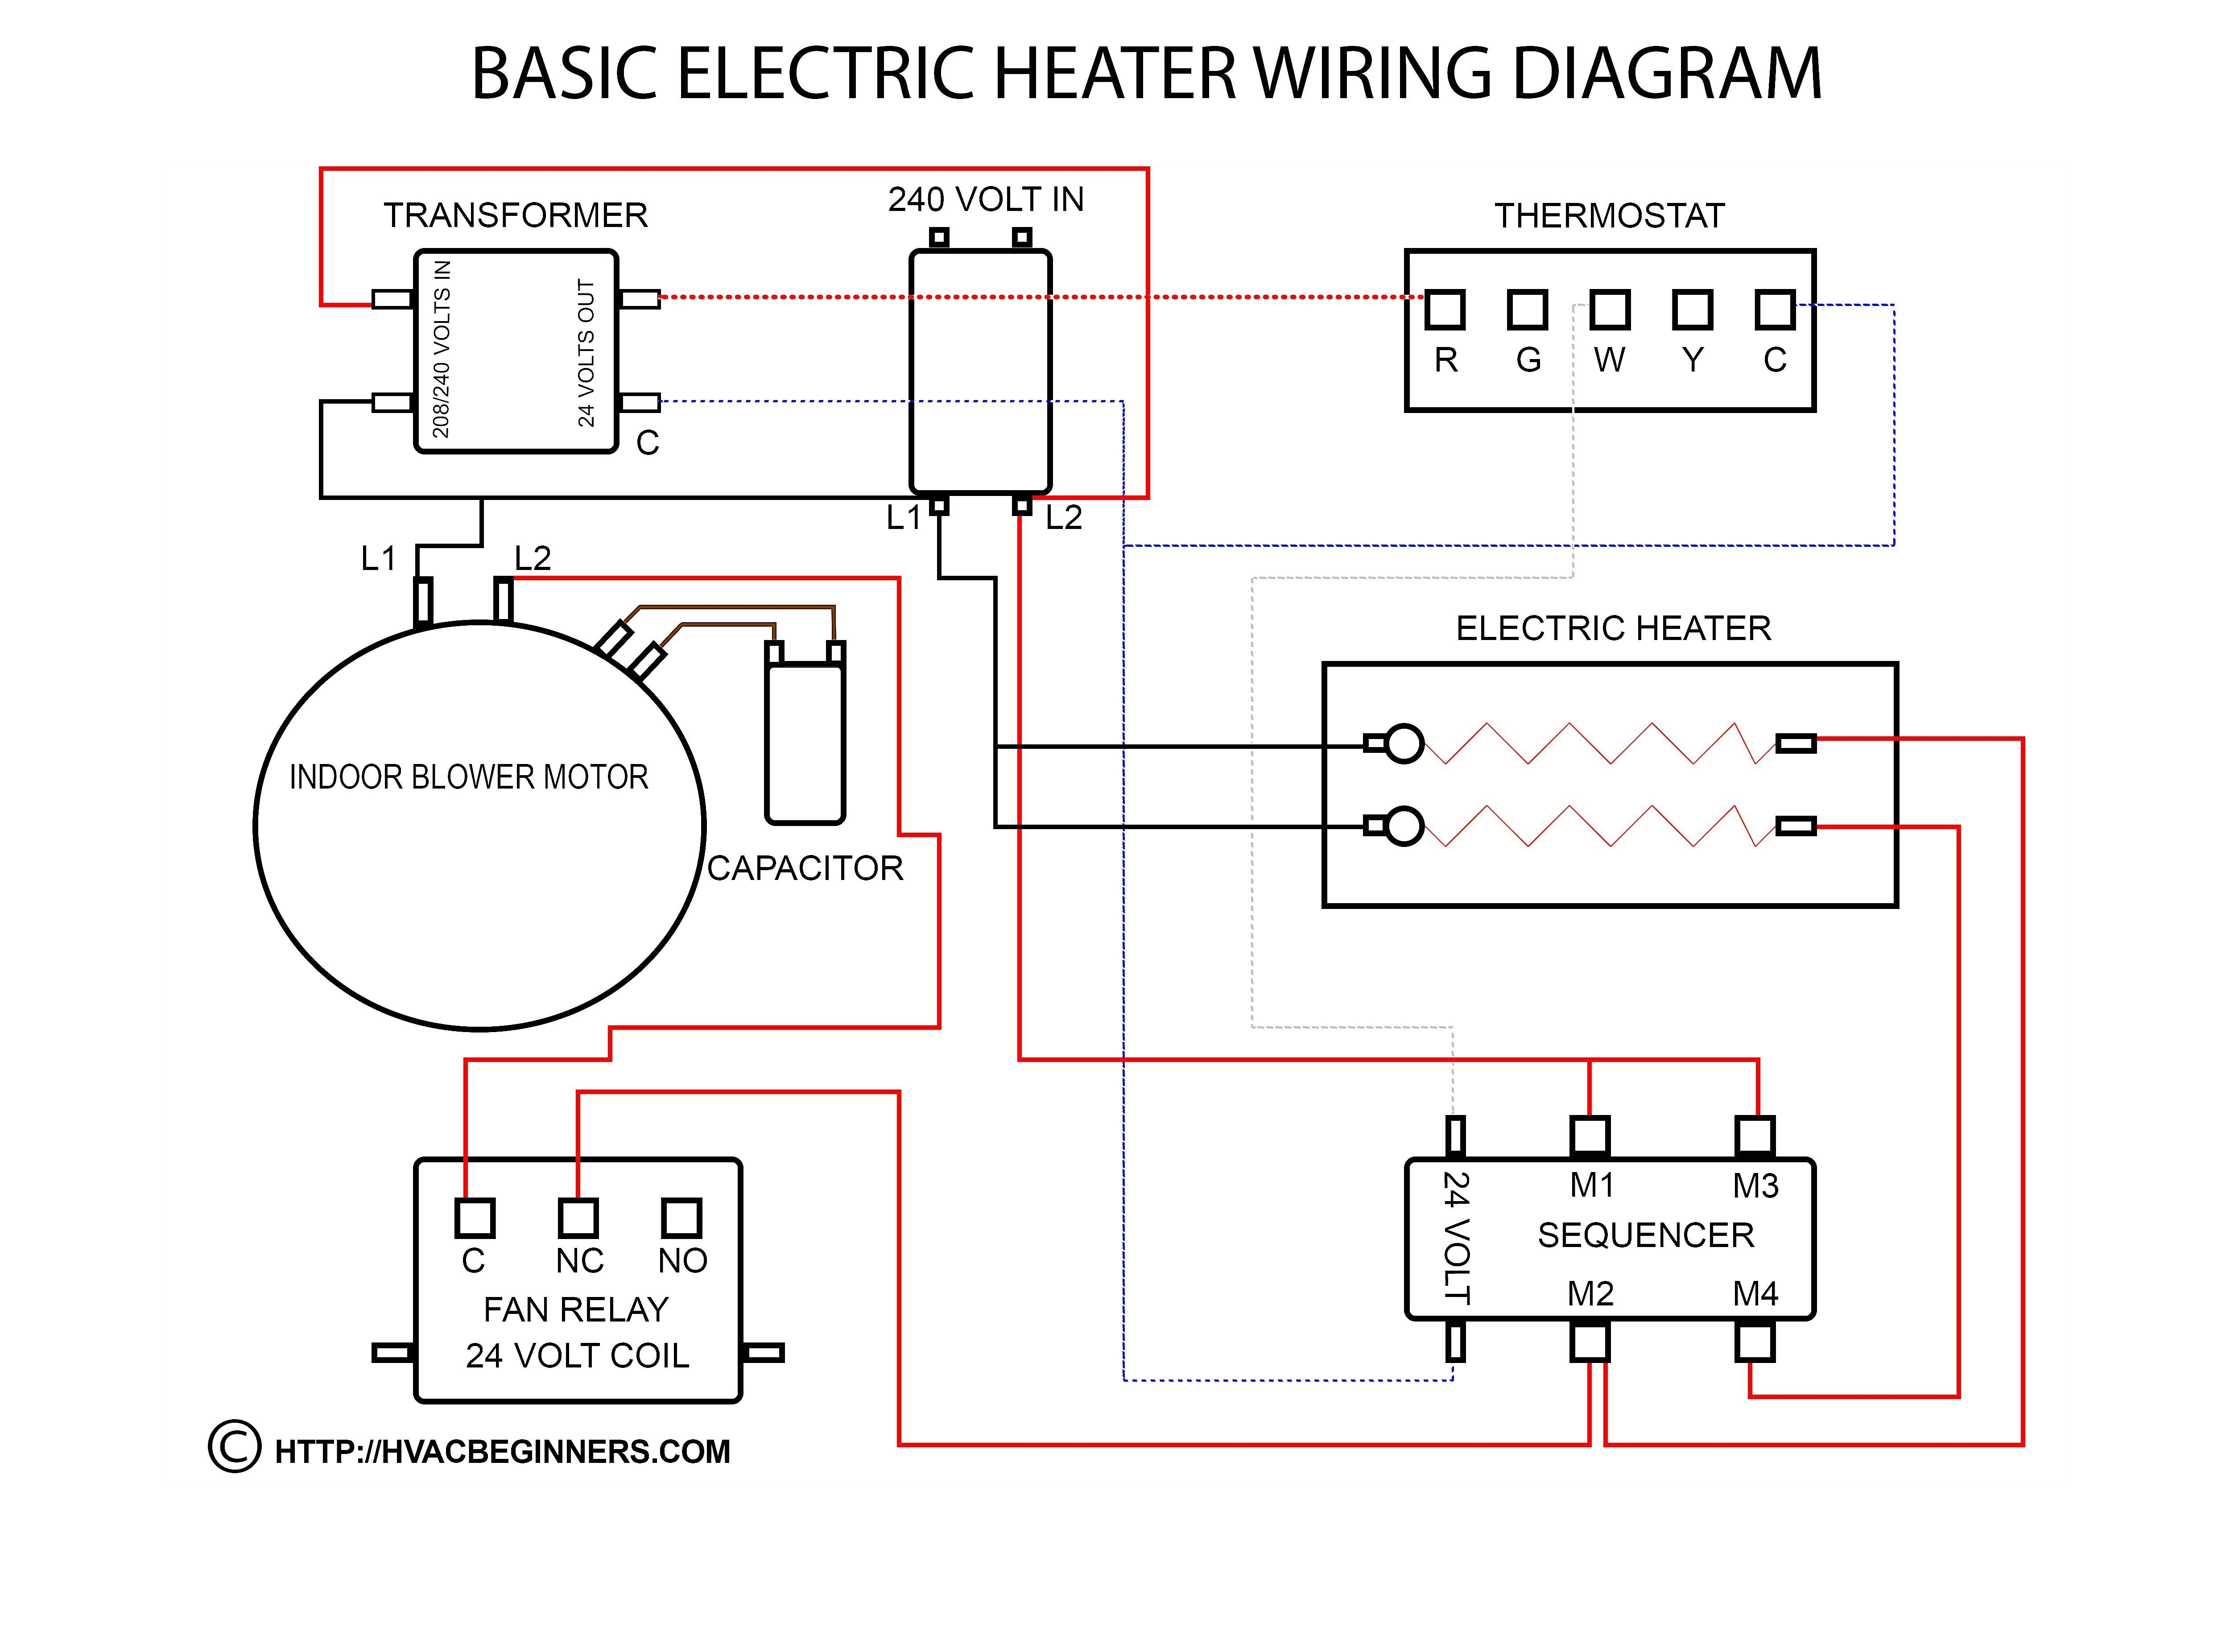 Stelpro Electric Furnace Wiring Diagram Best Wiring Diagram for Electric Heater thermostat Free Download Wiring